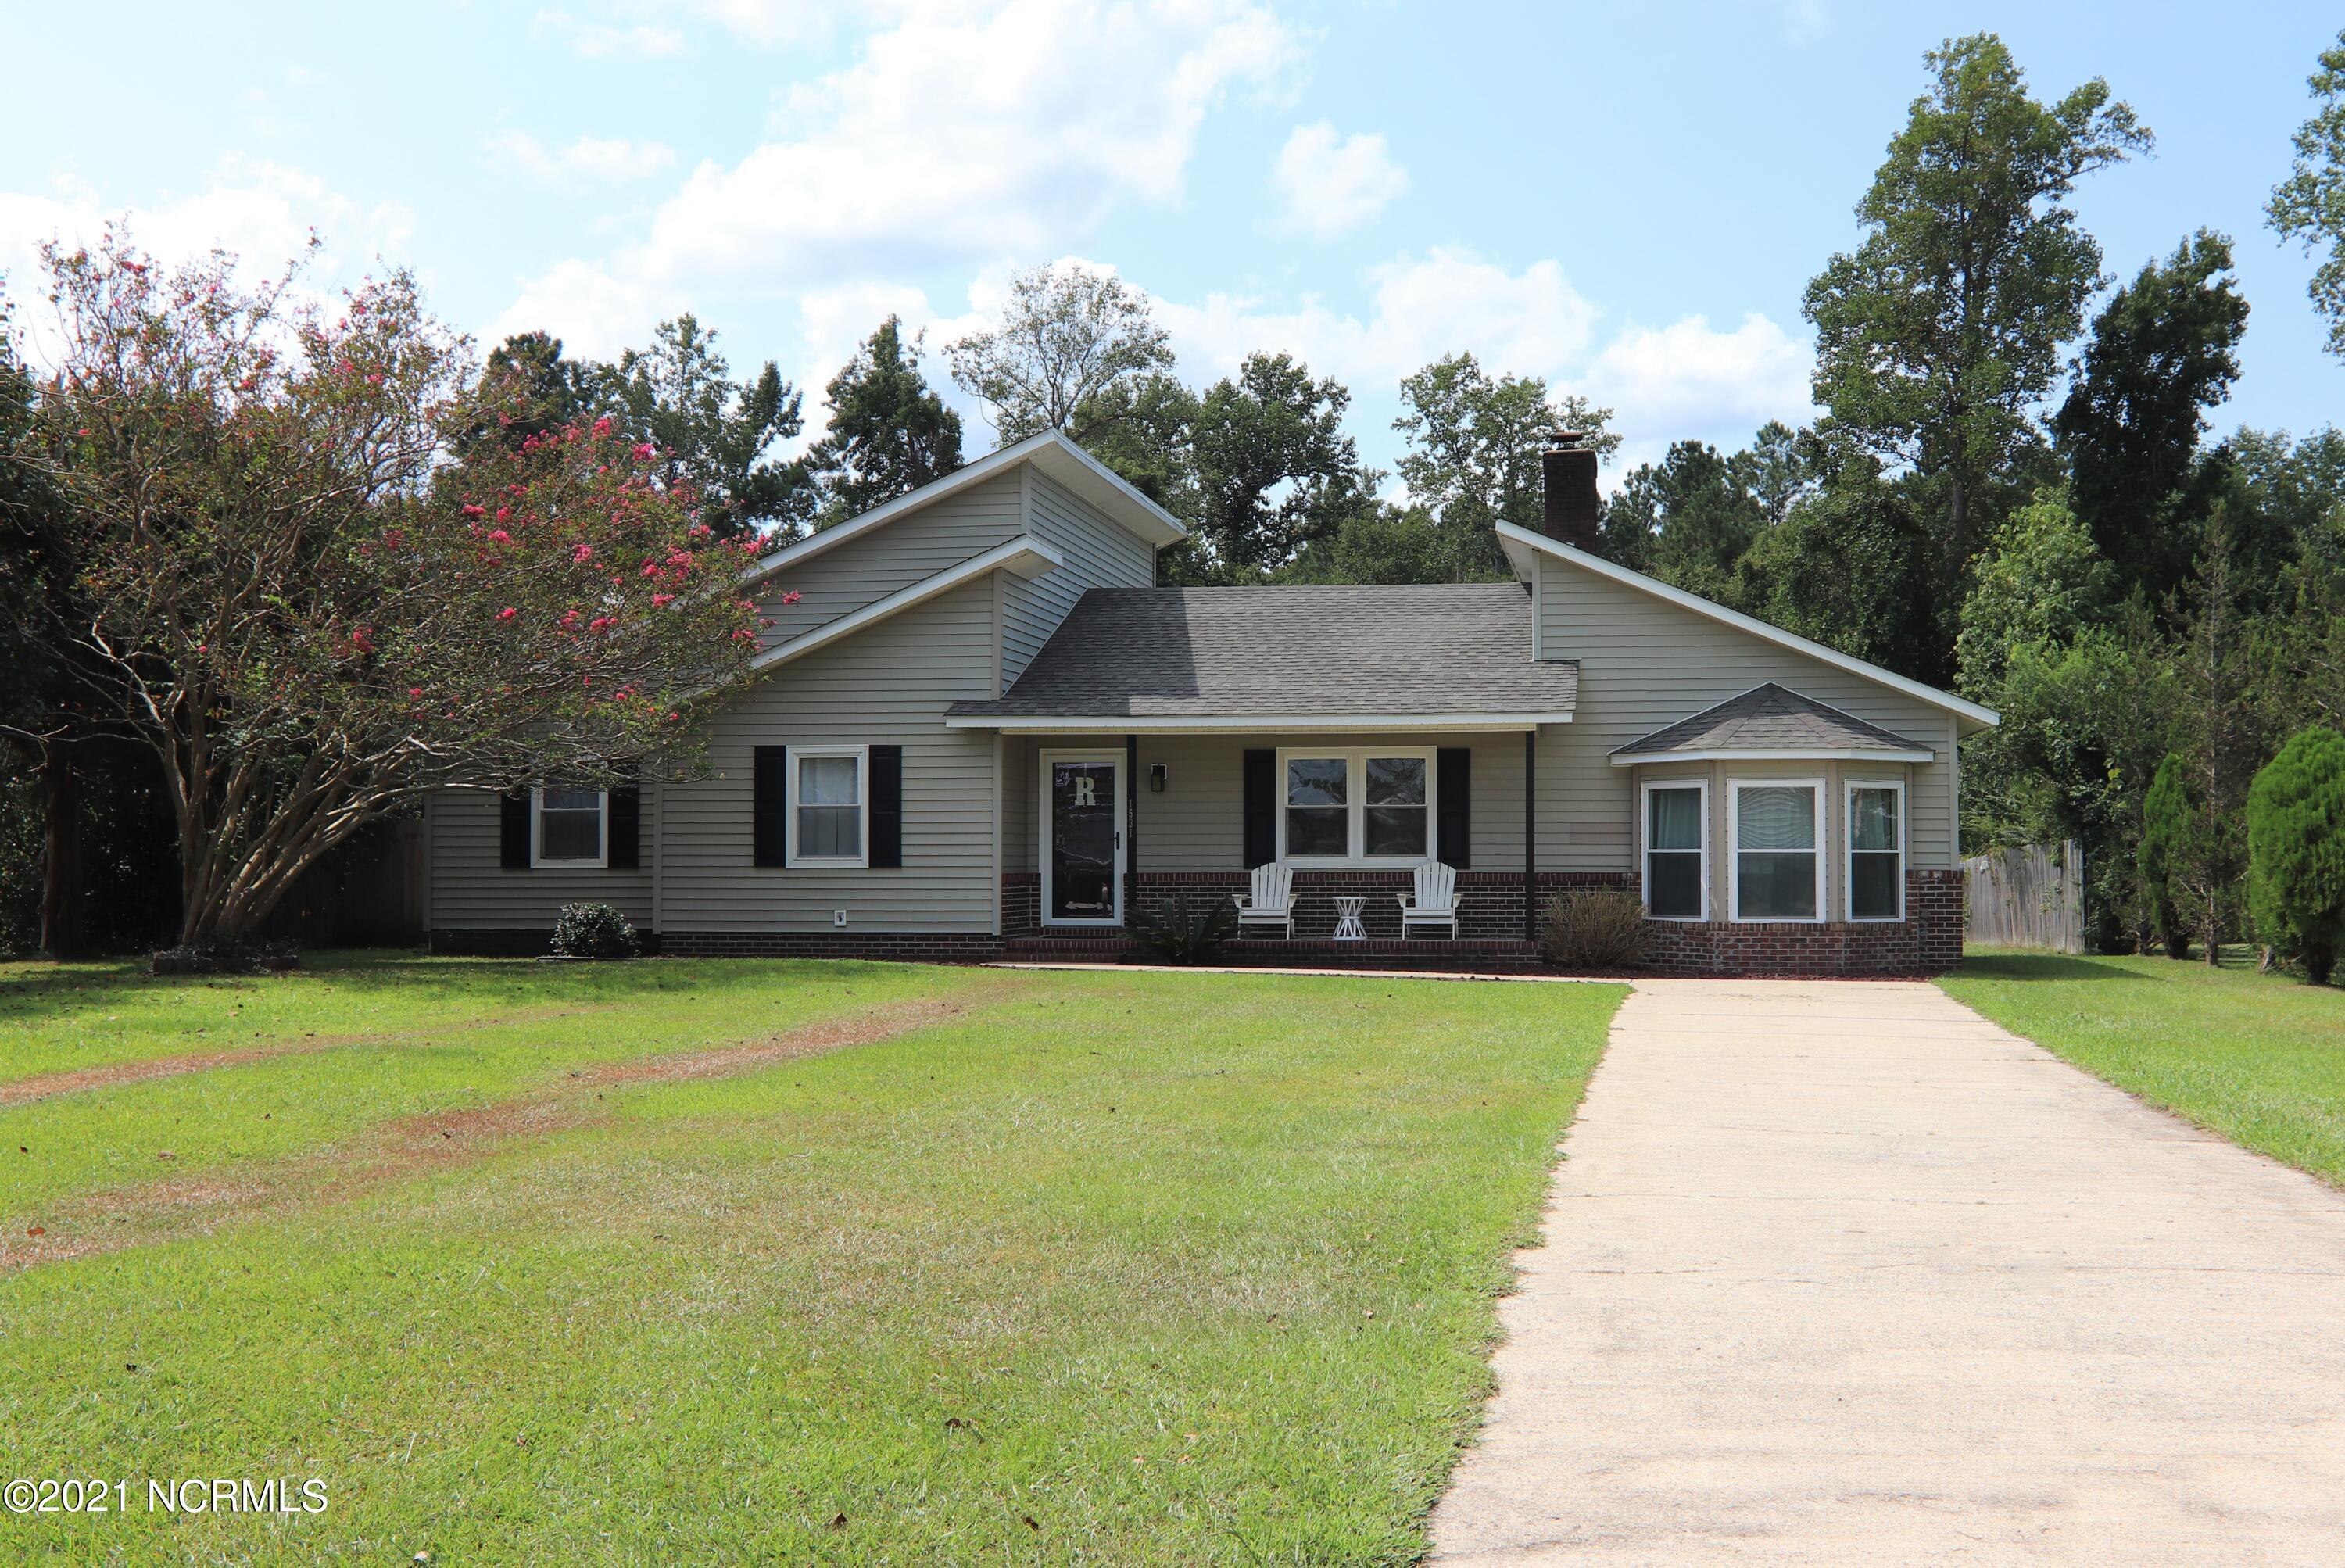 Home Sweet Home!  Are you looking for plenty of space and a large yard?  Thinking of getting chickens or goats?  Then, don't miss out on this 3-bedroom ranch style home situated on over a half-acre with a large bonus room and storage shed! Conveniently located near Camp Lejeune gates, shopping, restaurants and beaches.  Best of all, there's NO city taxes or HOA! As you pull into the driveway, you'll be welcomed by the home's unique and stylish design along with simple but elegant landscaping. The colorful flowers on crepe myrtle tree will catch your attention as you head onto the inviting covered front porch.  Step inside onto beautiful laminate flooring that flows throughout the main living area.   The living room features a floor-to-ceiling brick fireplace that's perfect for warming up on those chilly evenings.  The hallway to the left leads to 3 bedrooms and 2 full bathrooms, with the master bedroom and bathroom in the back of the home. From the living room, you'll enter the kitchen and find attractive white cabinets, a stainless-steel stove and dishwasher along with an upgraded faucet and black refrigerator.   Lovely French doors, that open up to the big backyard, allow lots of natural light to pour into the dining room. Off the dining area is a large bonus room that's perfect to use as a gym, play area or second living room!The storage shed in the back offers plenty of extra storage space.  The backyard offers privacy as it's partially enclosed with a 6-foot wooden privacy fence.  The yard continues behind the fence to offer space that's perfect for chickens or a garden!  Schedule a showing today before this one's gone!